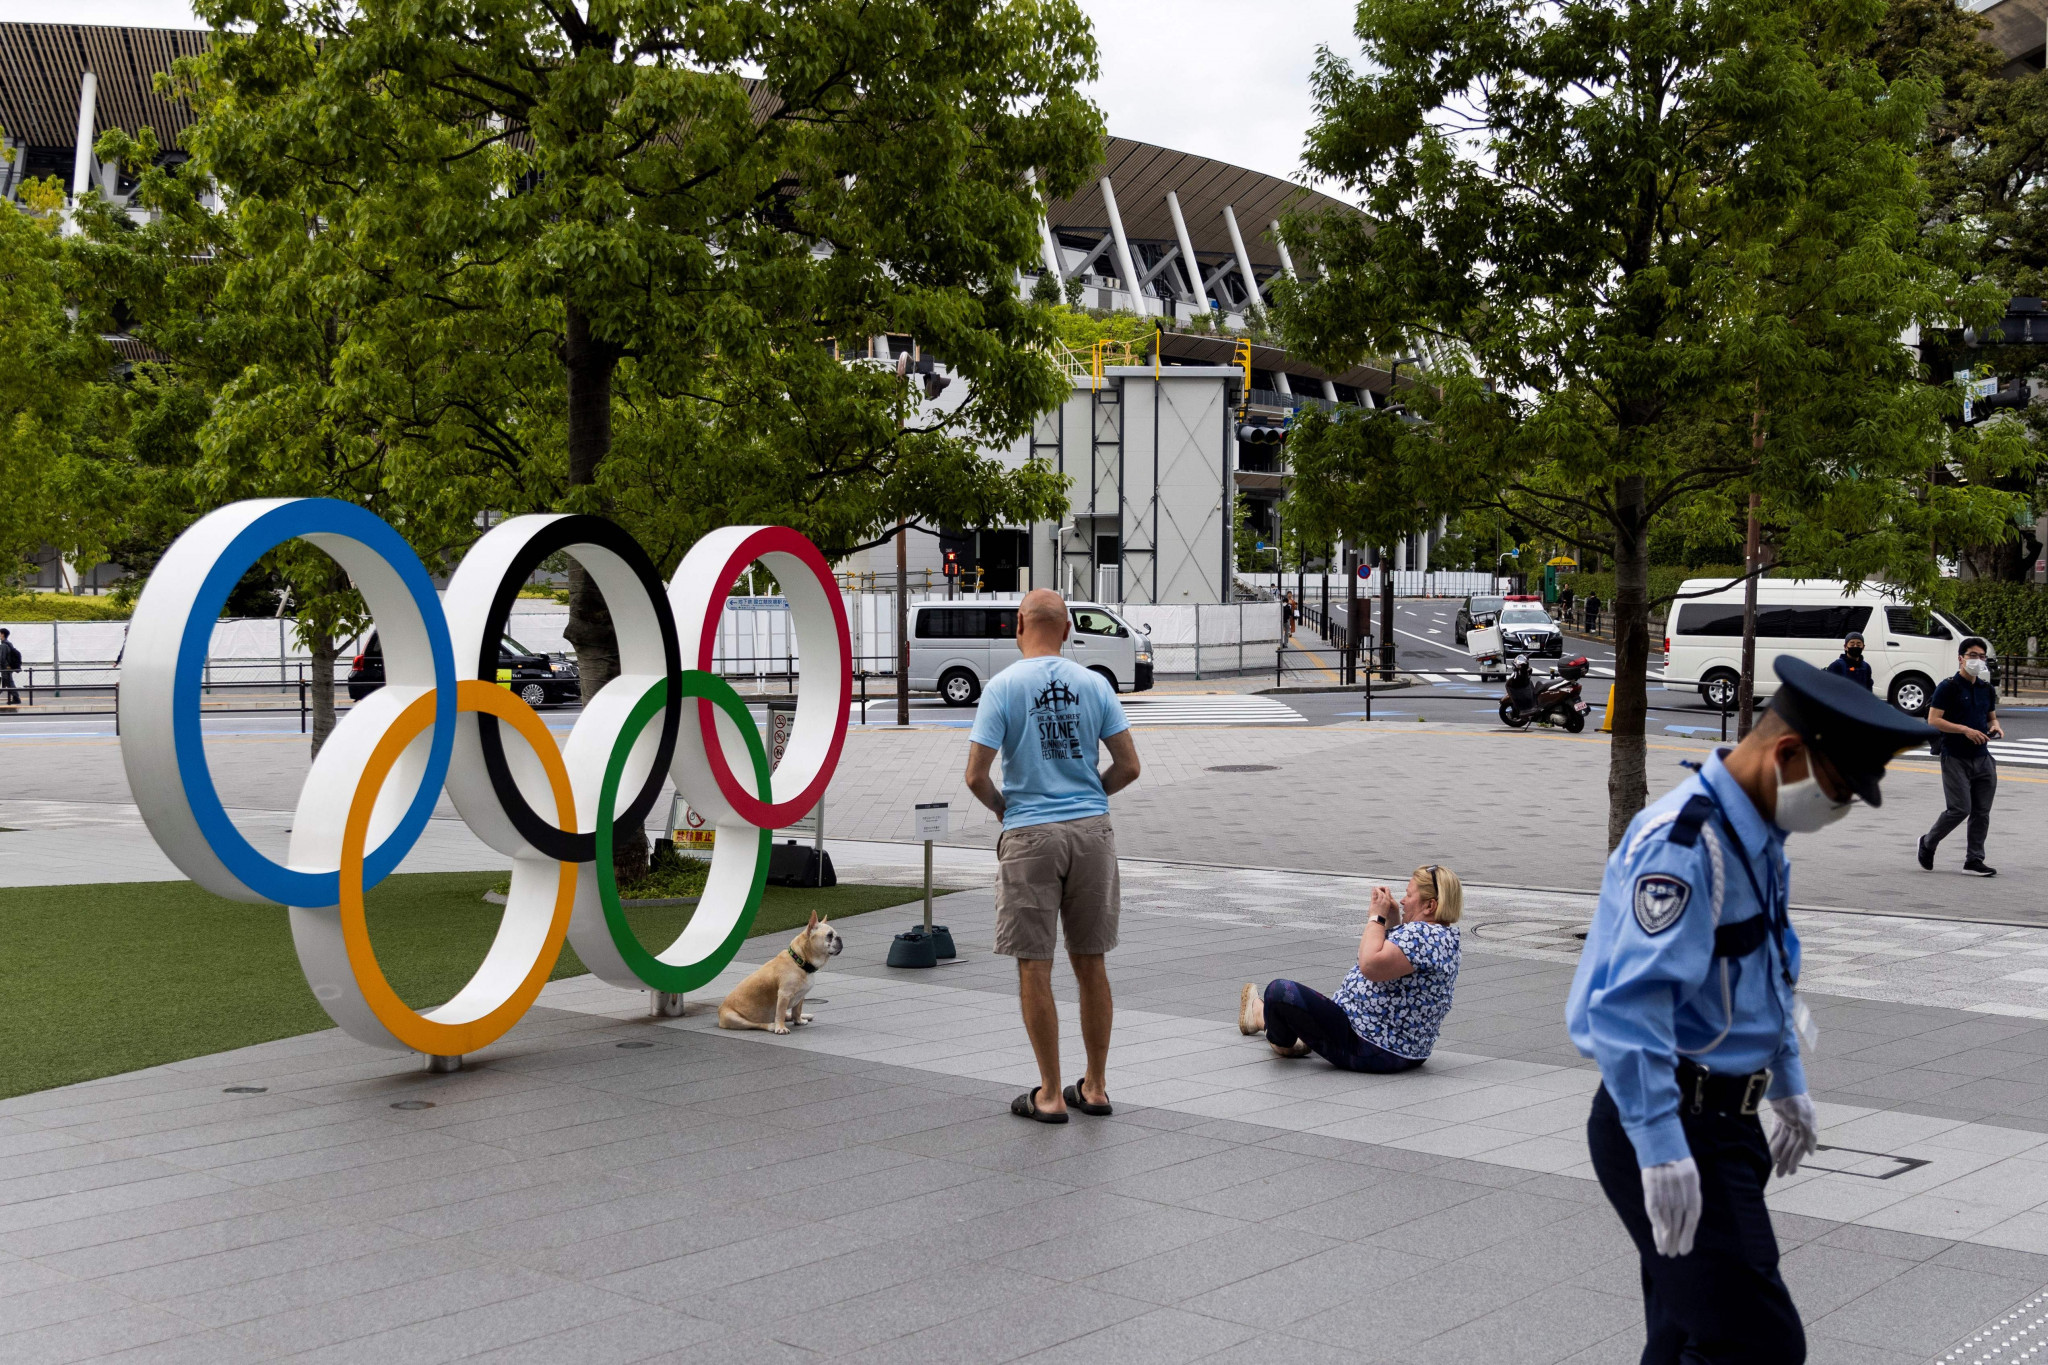 Companies in Japan have expressed their concerns over the staging of the Games ©Getty Images